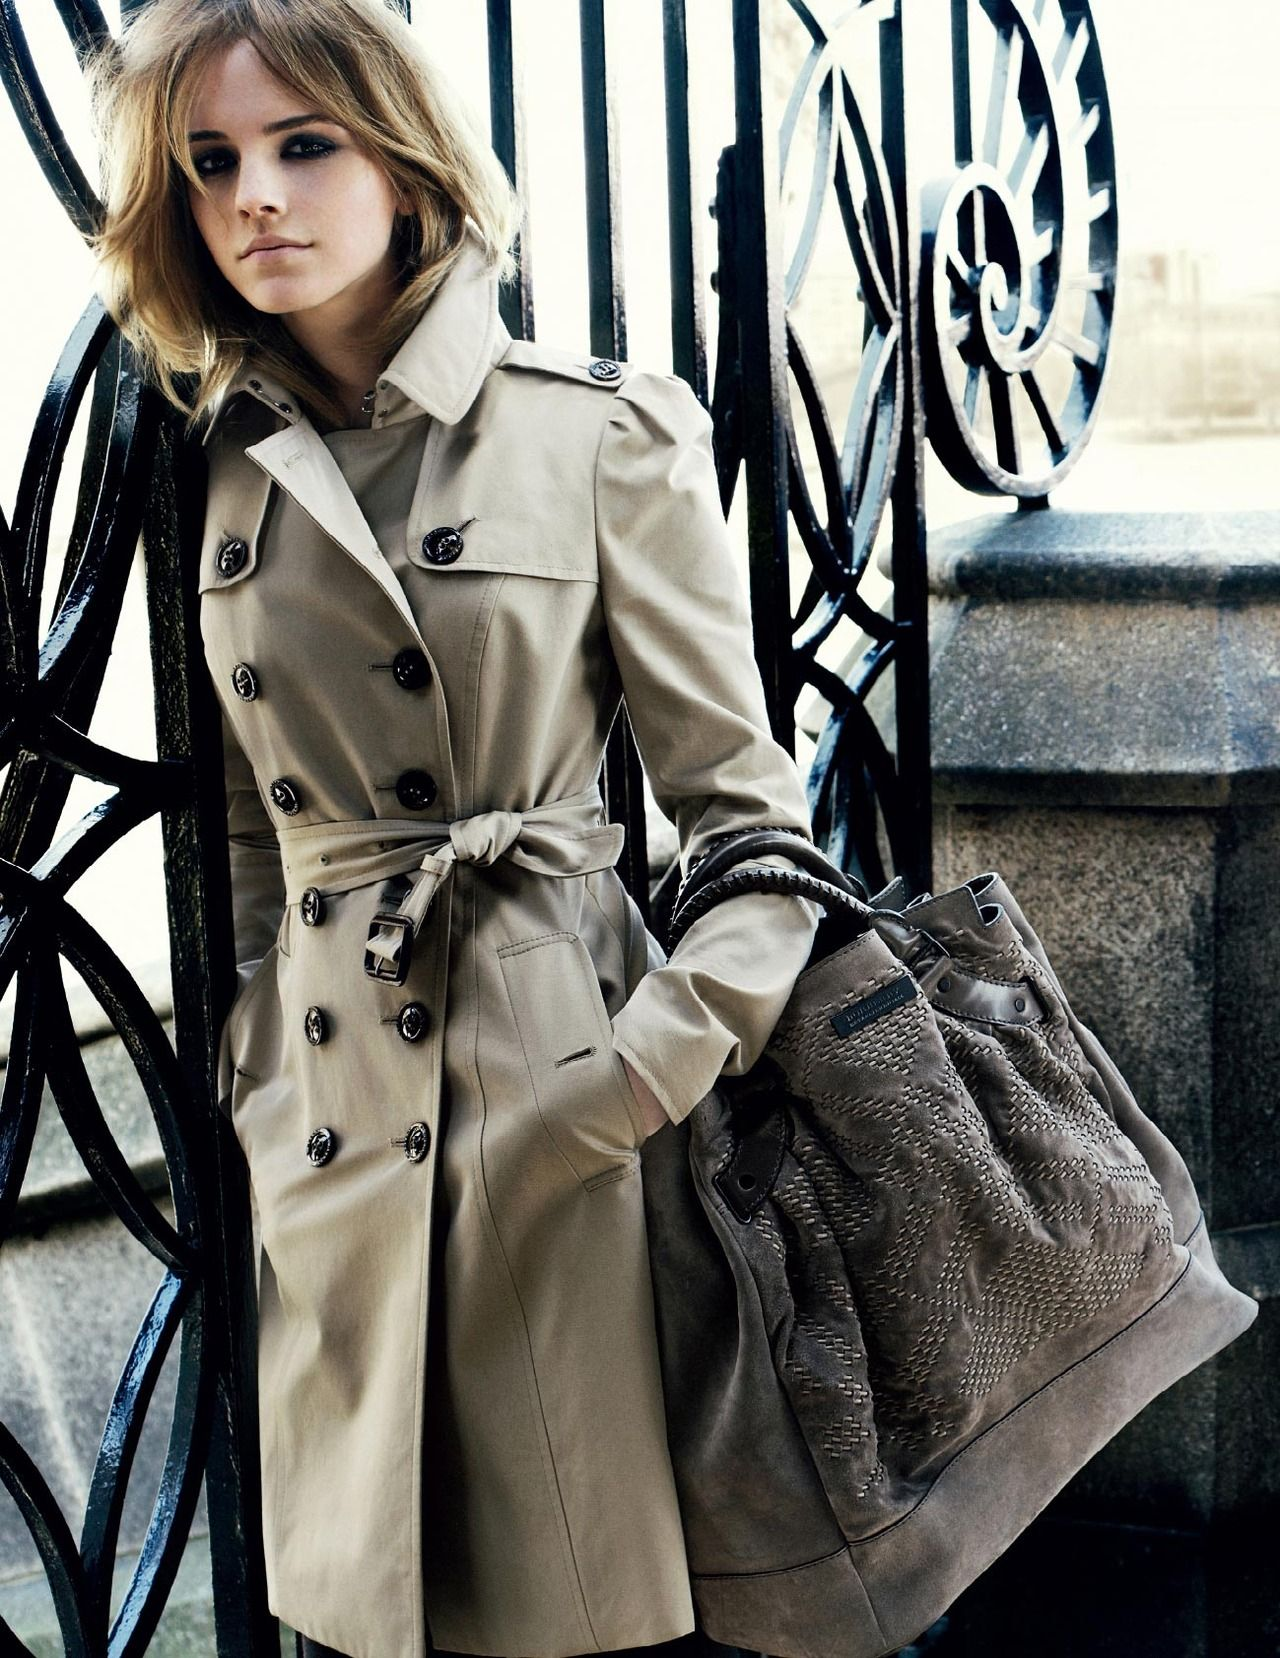 a4e8dc96009d Emma Watson - Burberry. If I had ability to splurge on designer clothes  these would be it.